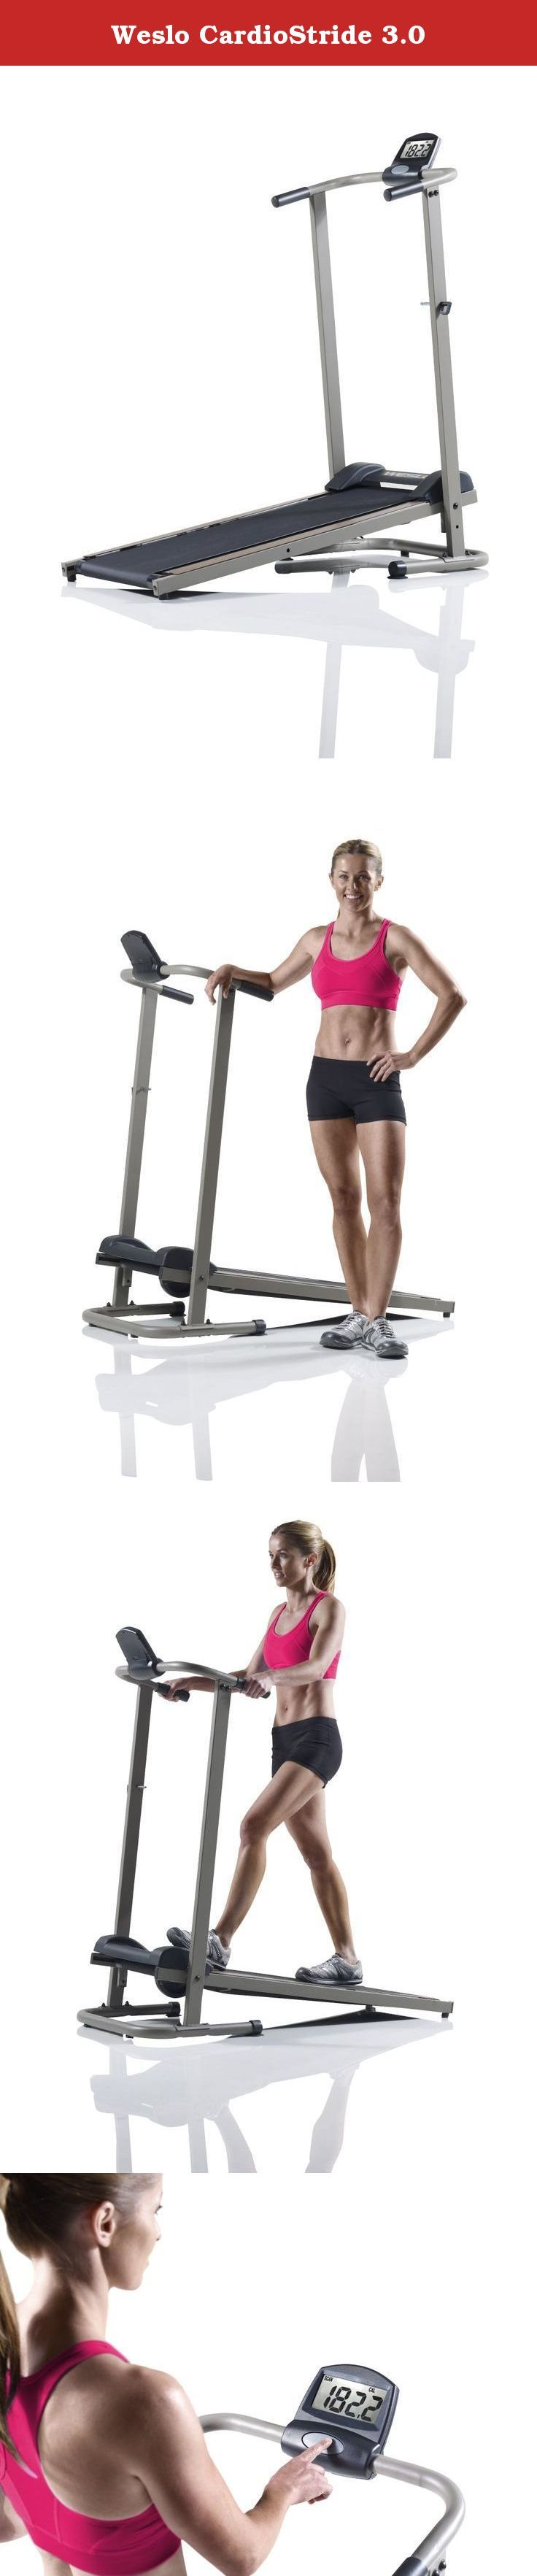 Weslo CardioStride 3.0. Save electricity* and money with the treadmill that doesn't require power from a wall outlet. The CardioStride 3.0 Treadmill is run manually, allowing you to engage different muscles and keeping your electricity cost down. *Batteries needed to power display.